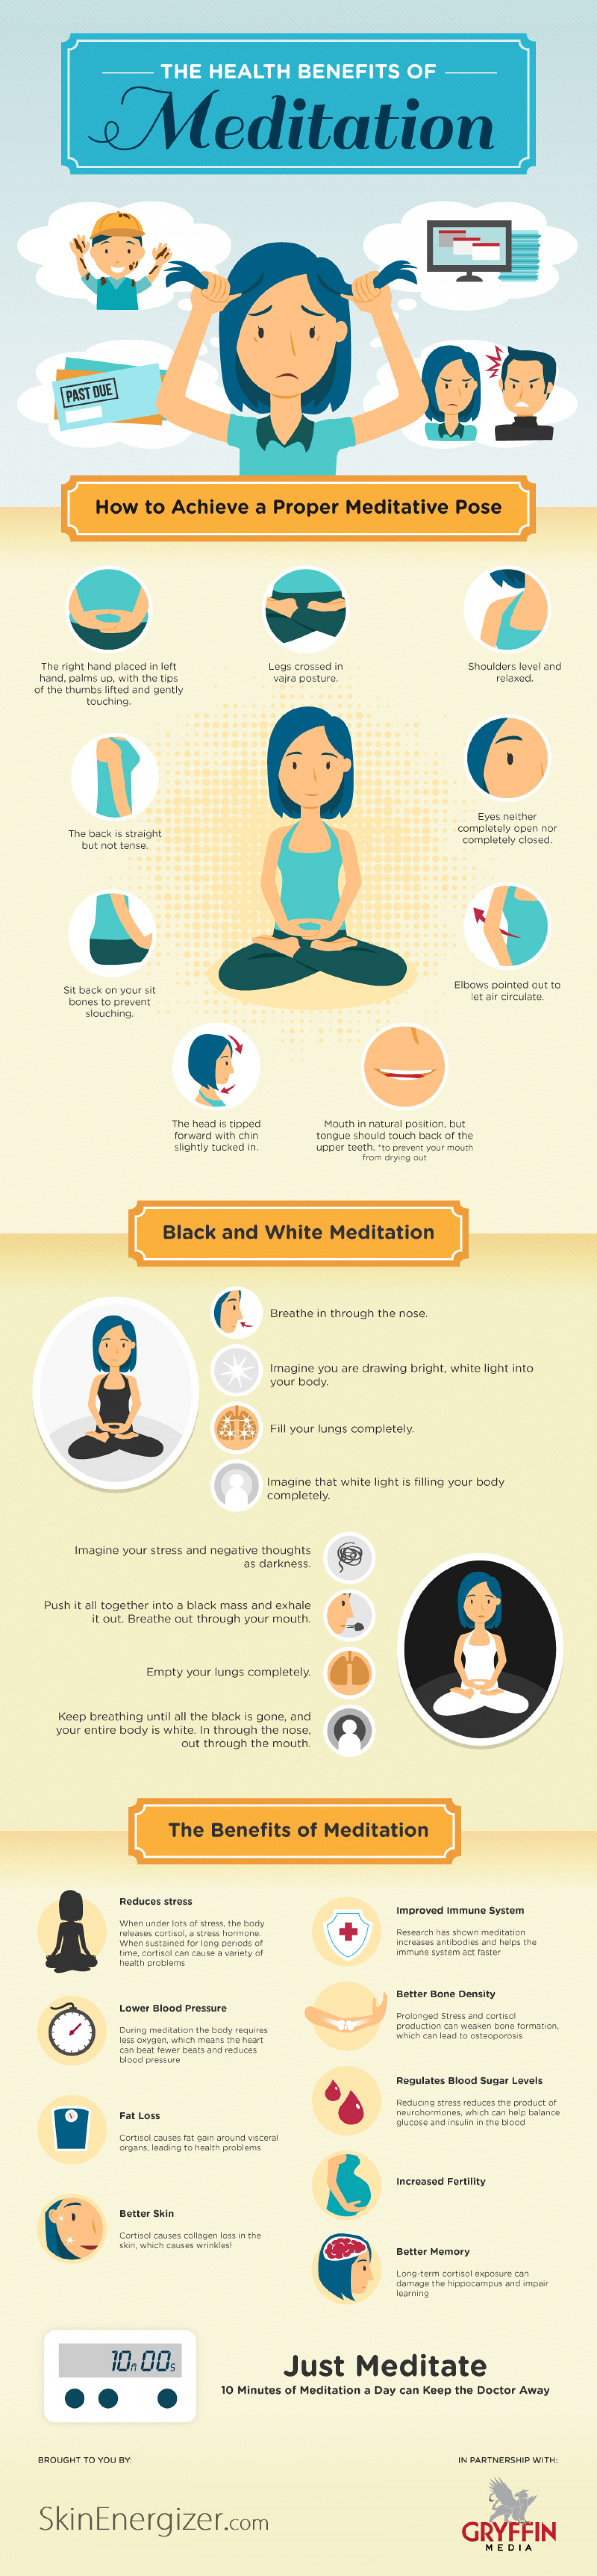 Tired? Stressed? Just Meditate! Infographic